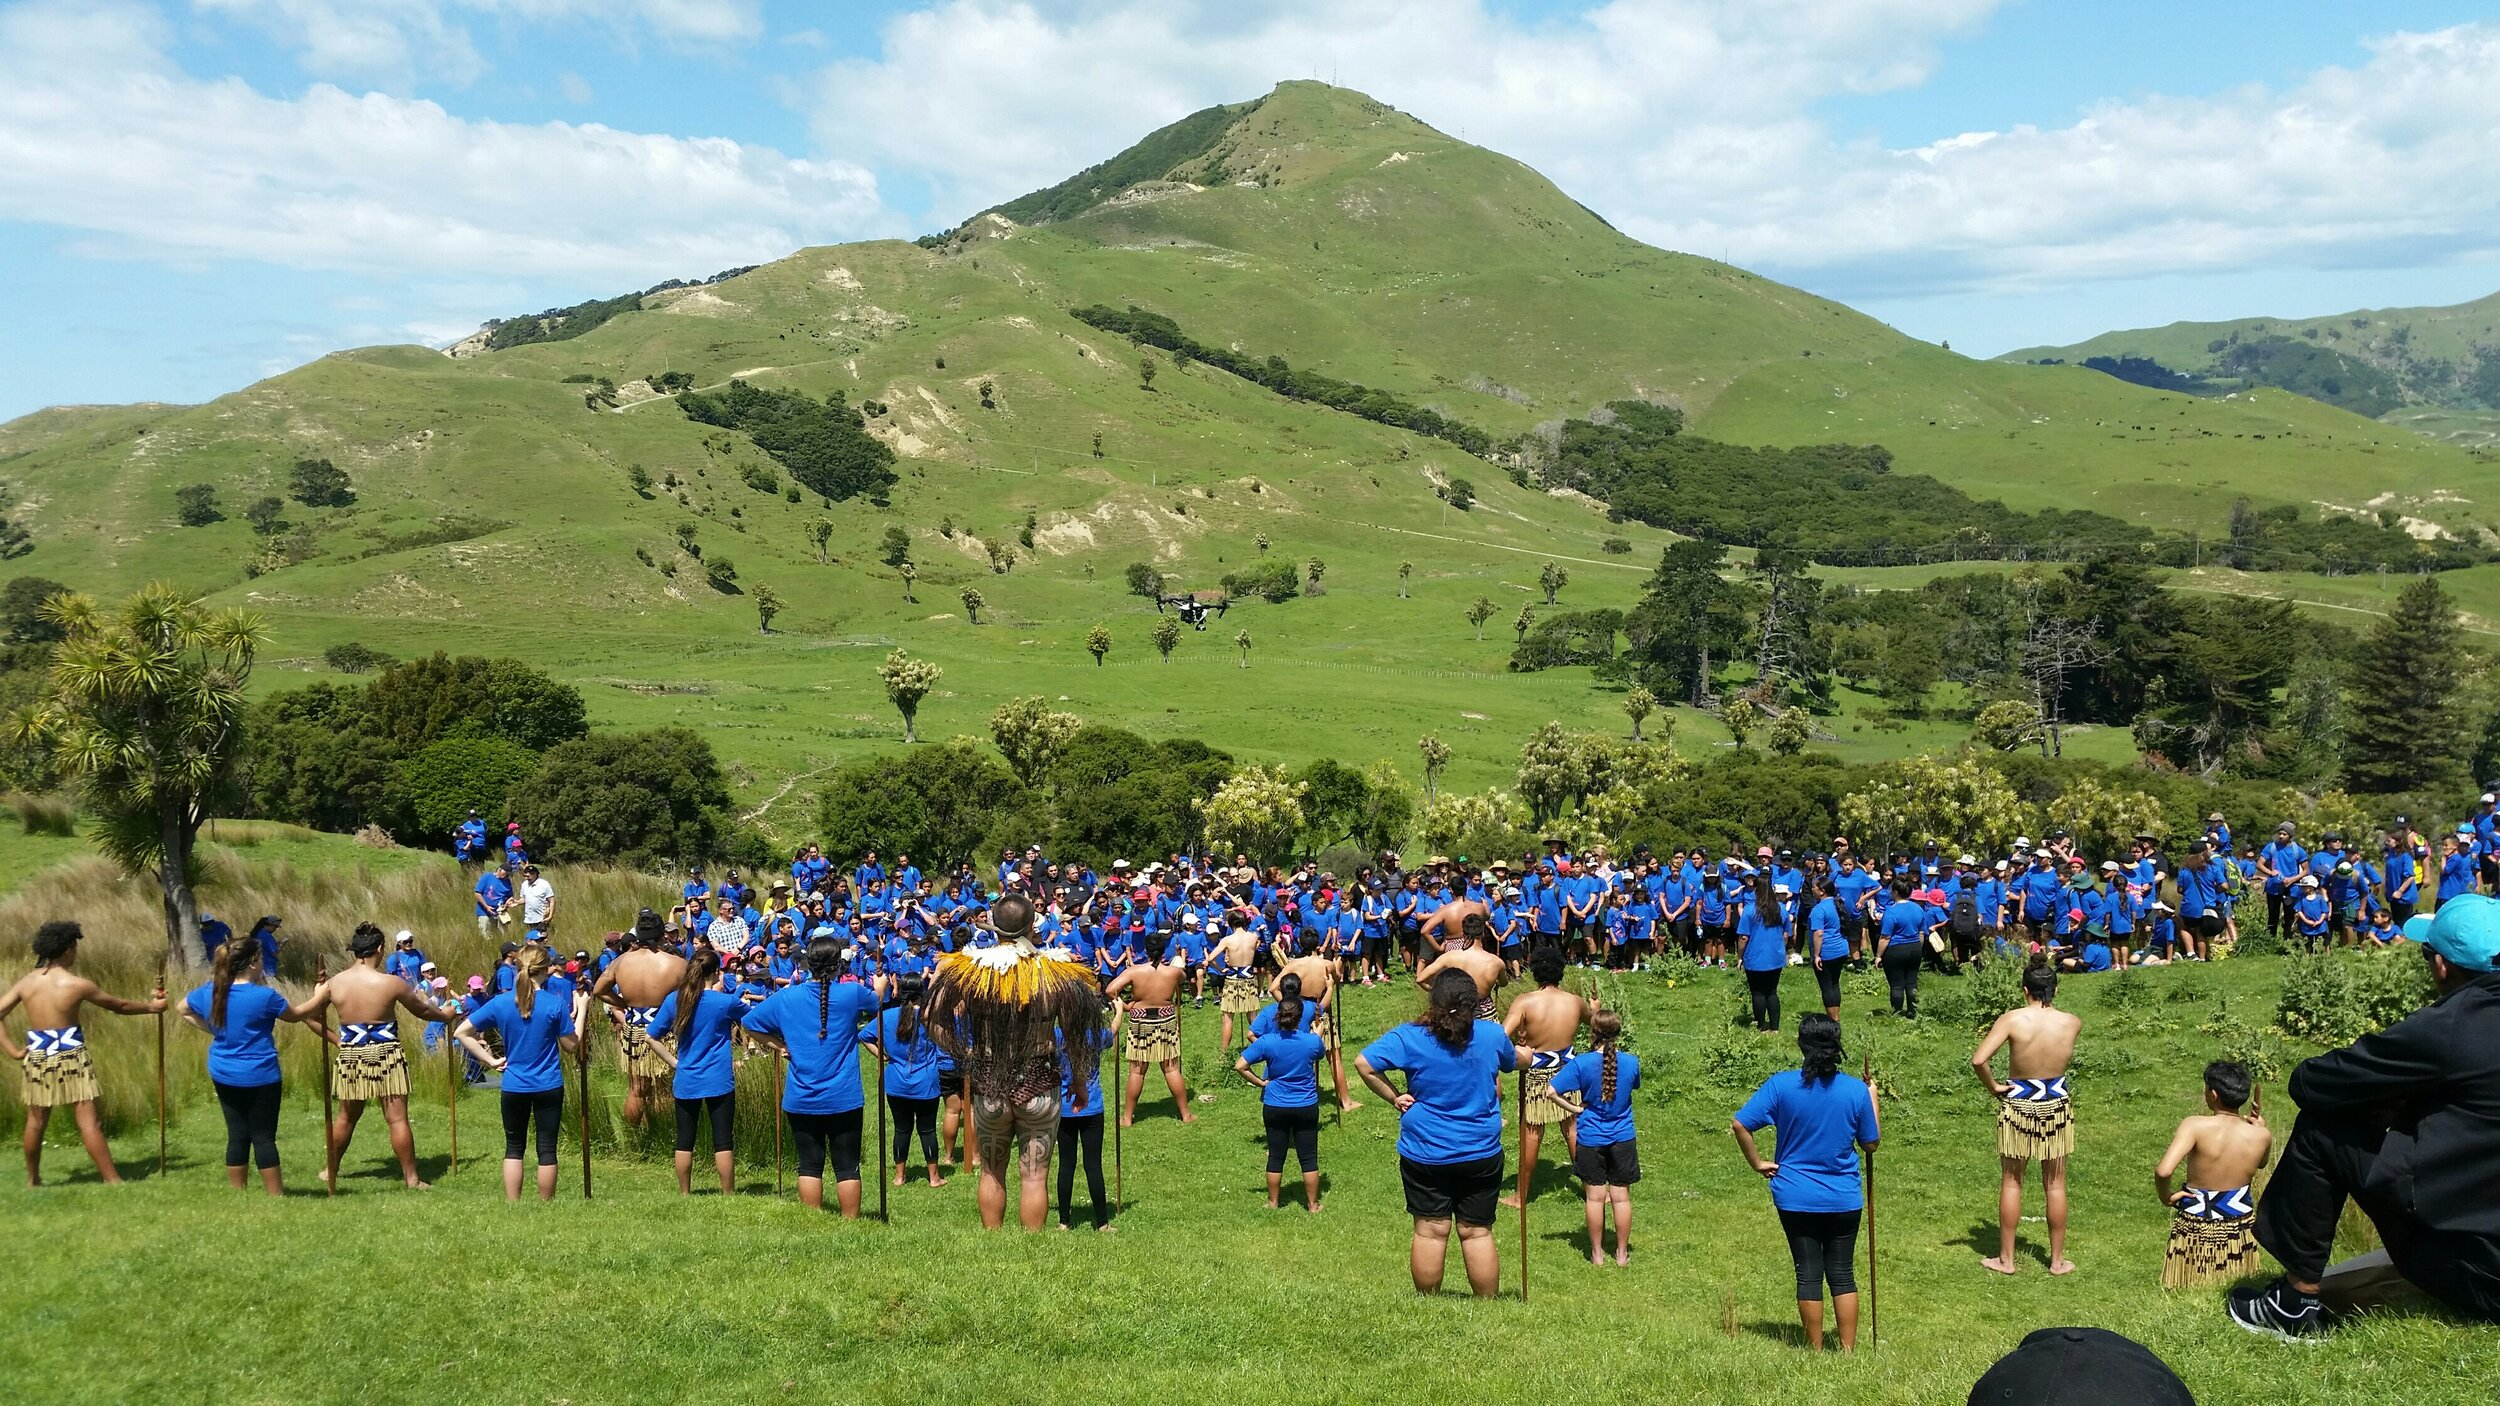 Te Aitanga a Hauiti and the Uawa Community blessing the Te Pourewa site in 2017. Image by Krystal Garrett.